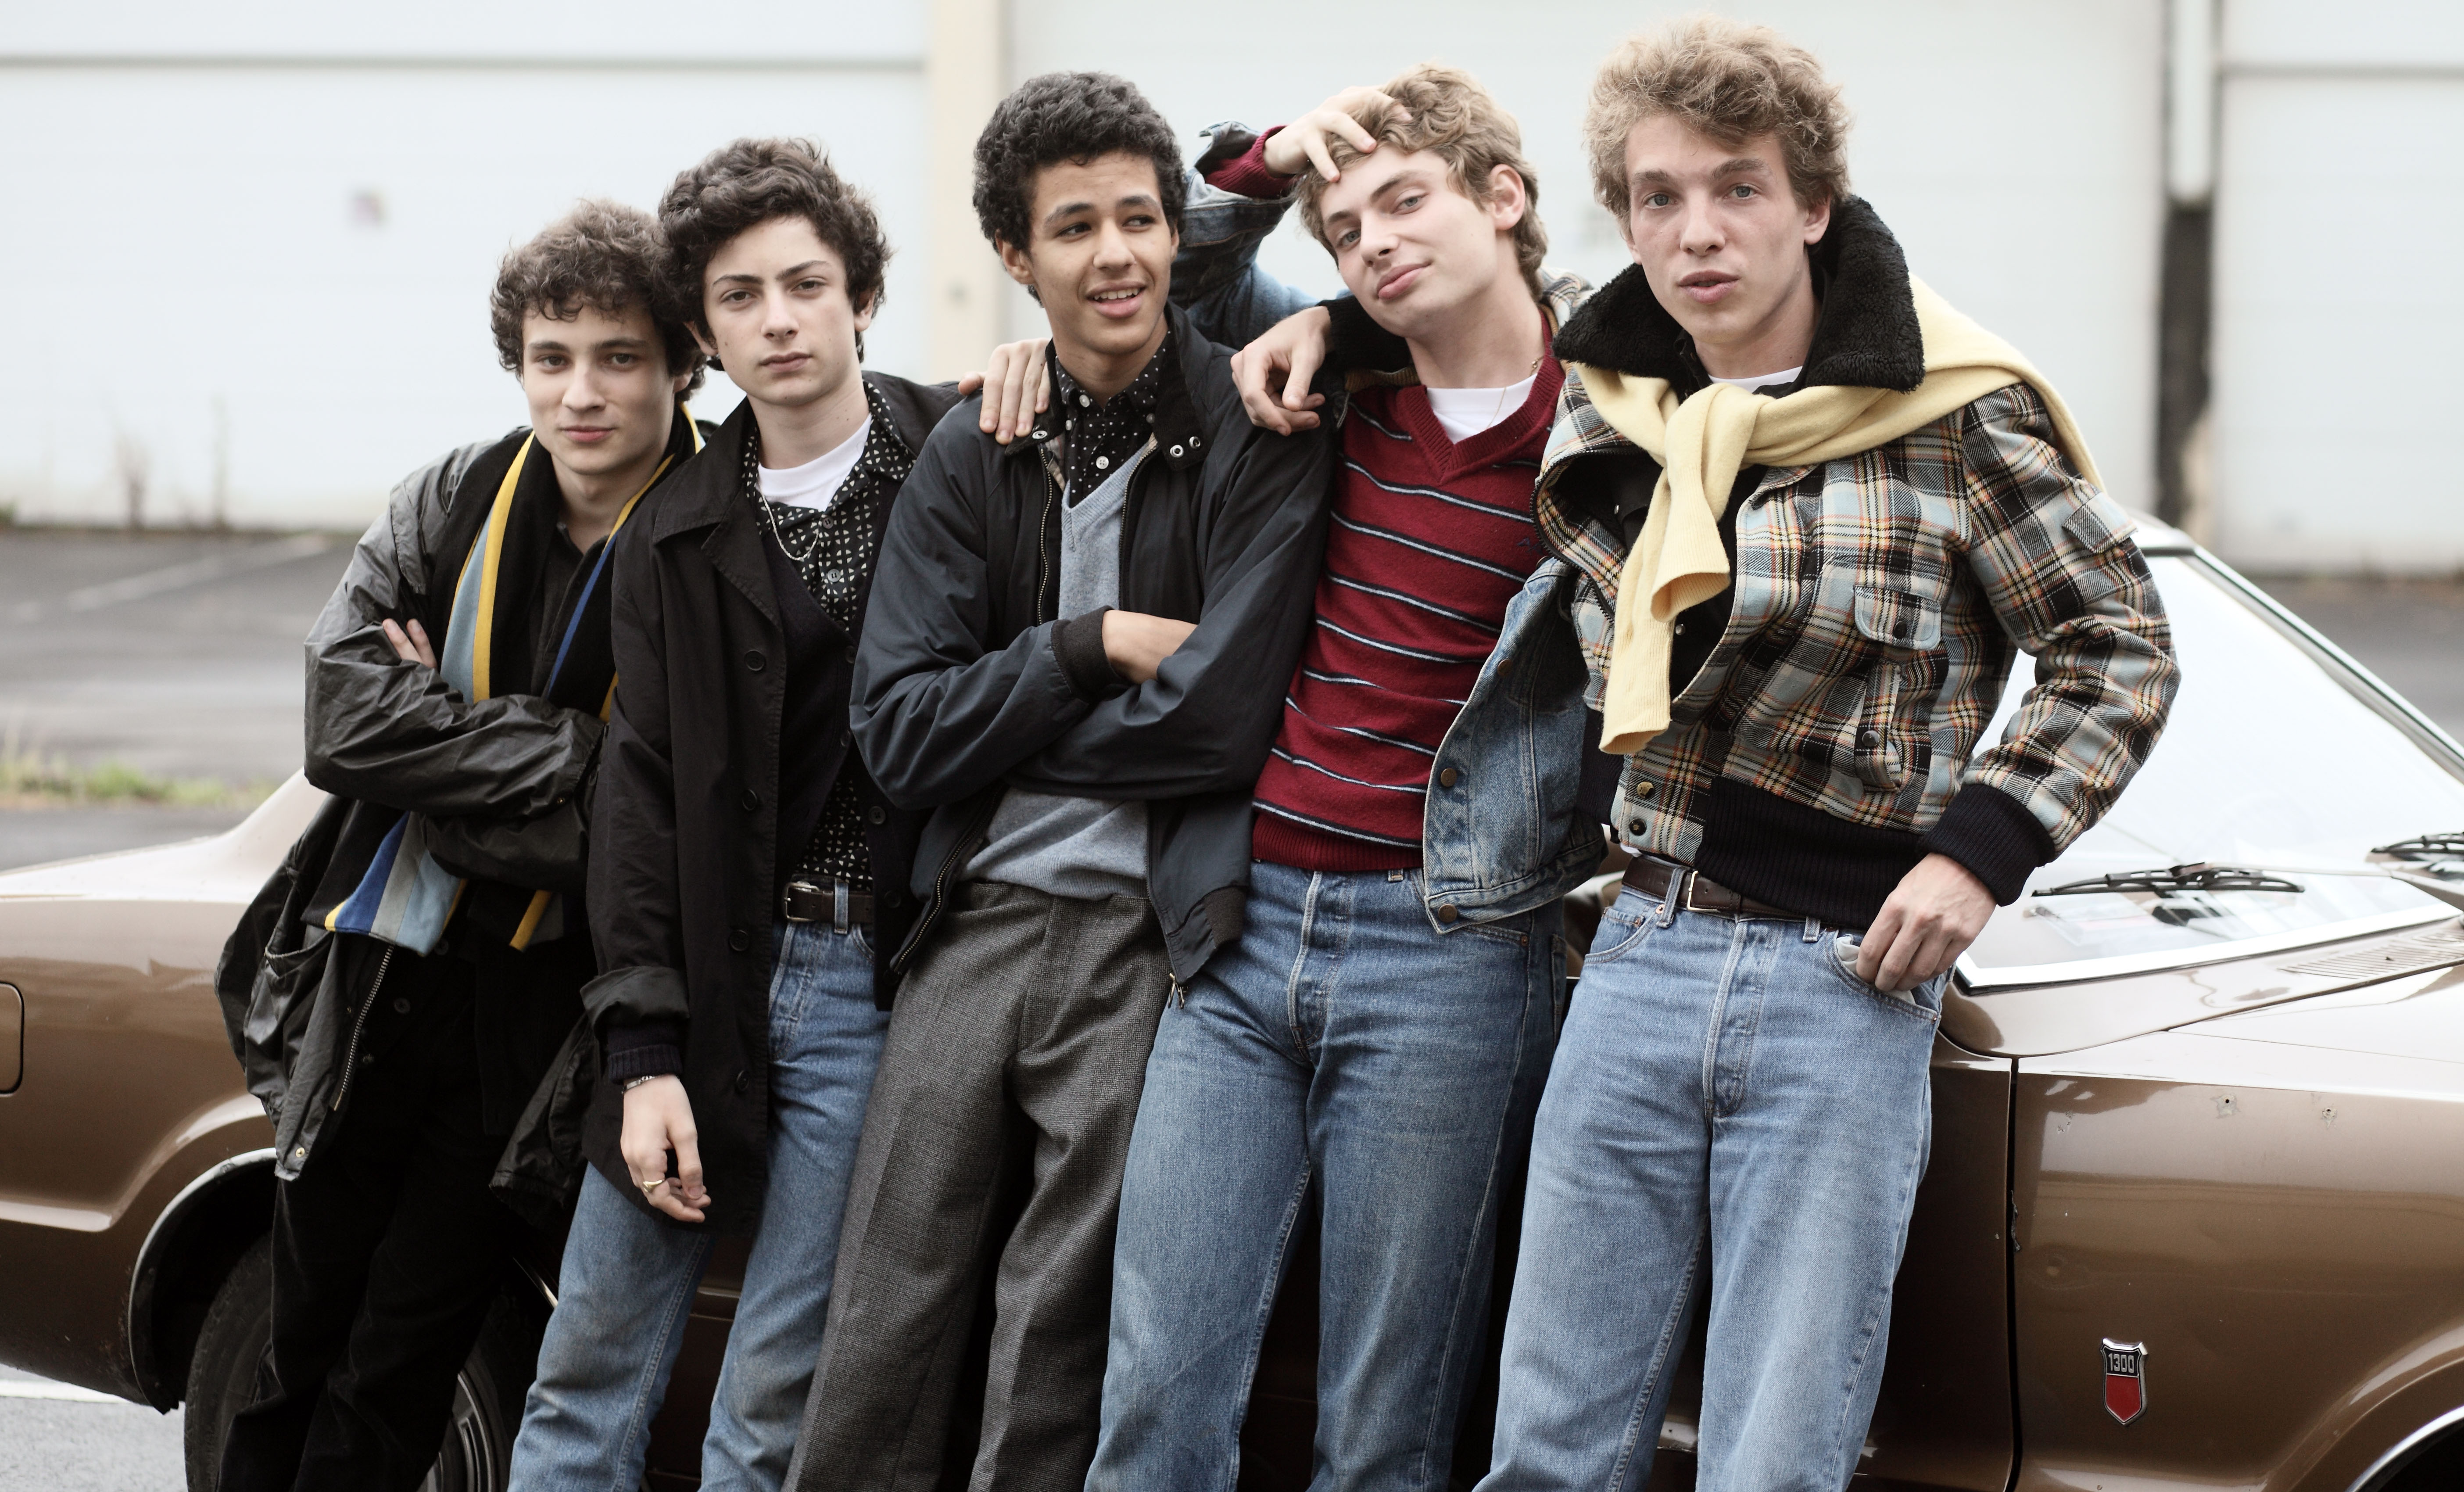 From left: Quentin Dolmaire, Theo Fernandez, Yassine Douighi, Raphael Cohen, and Pierre Andrau in My Golden Days.